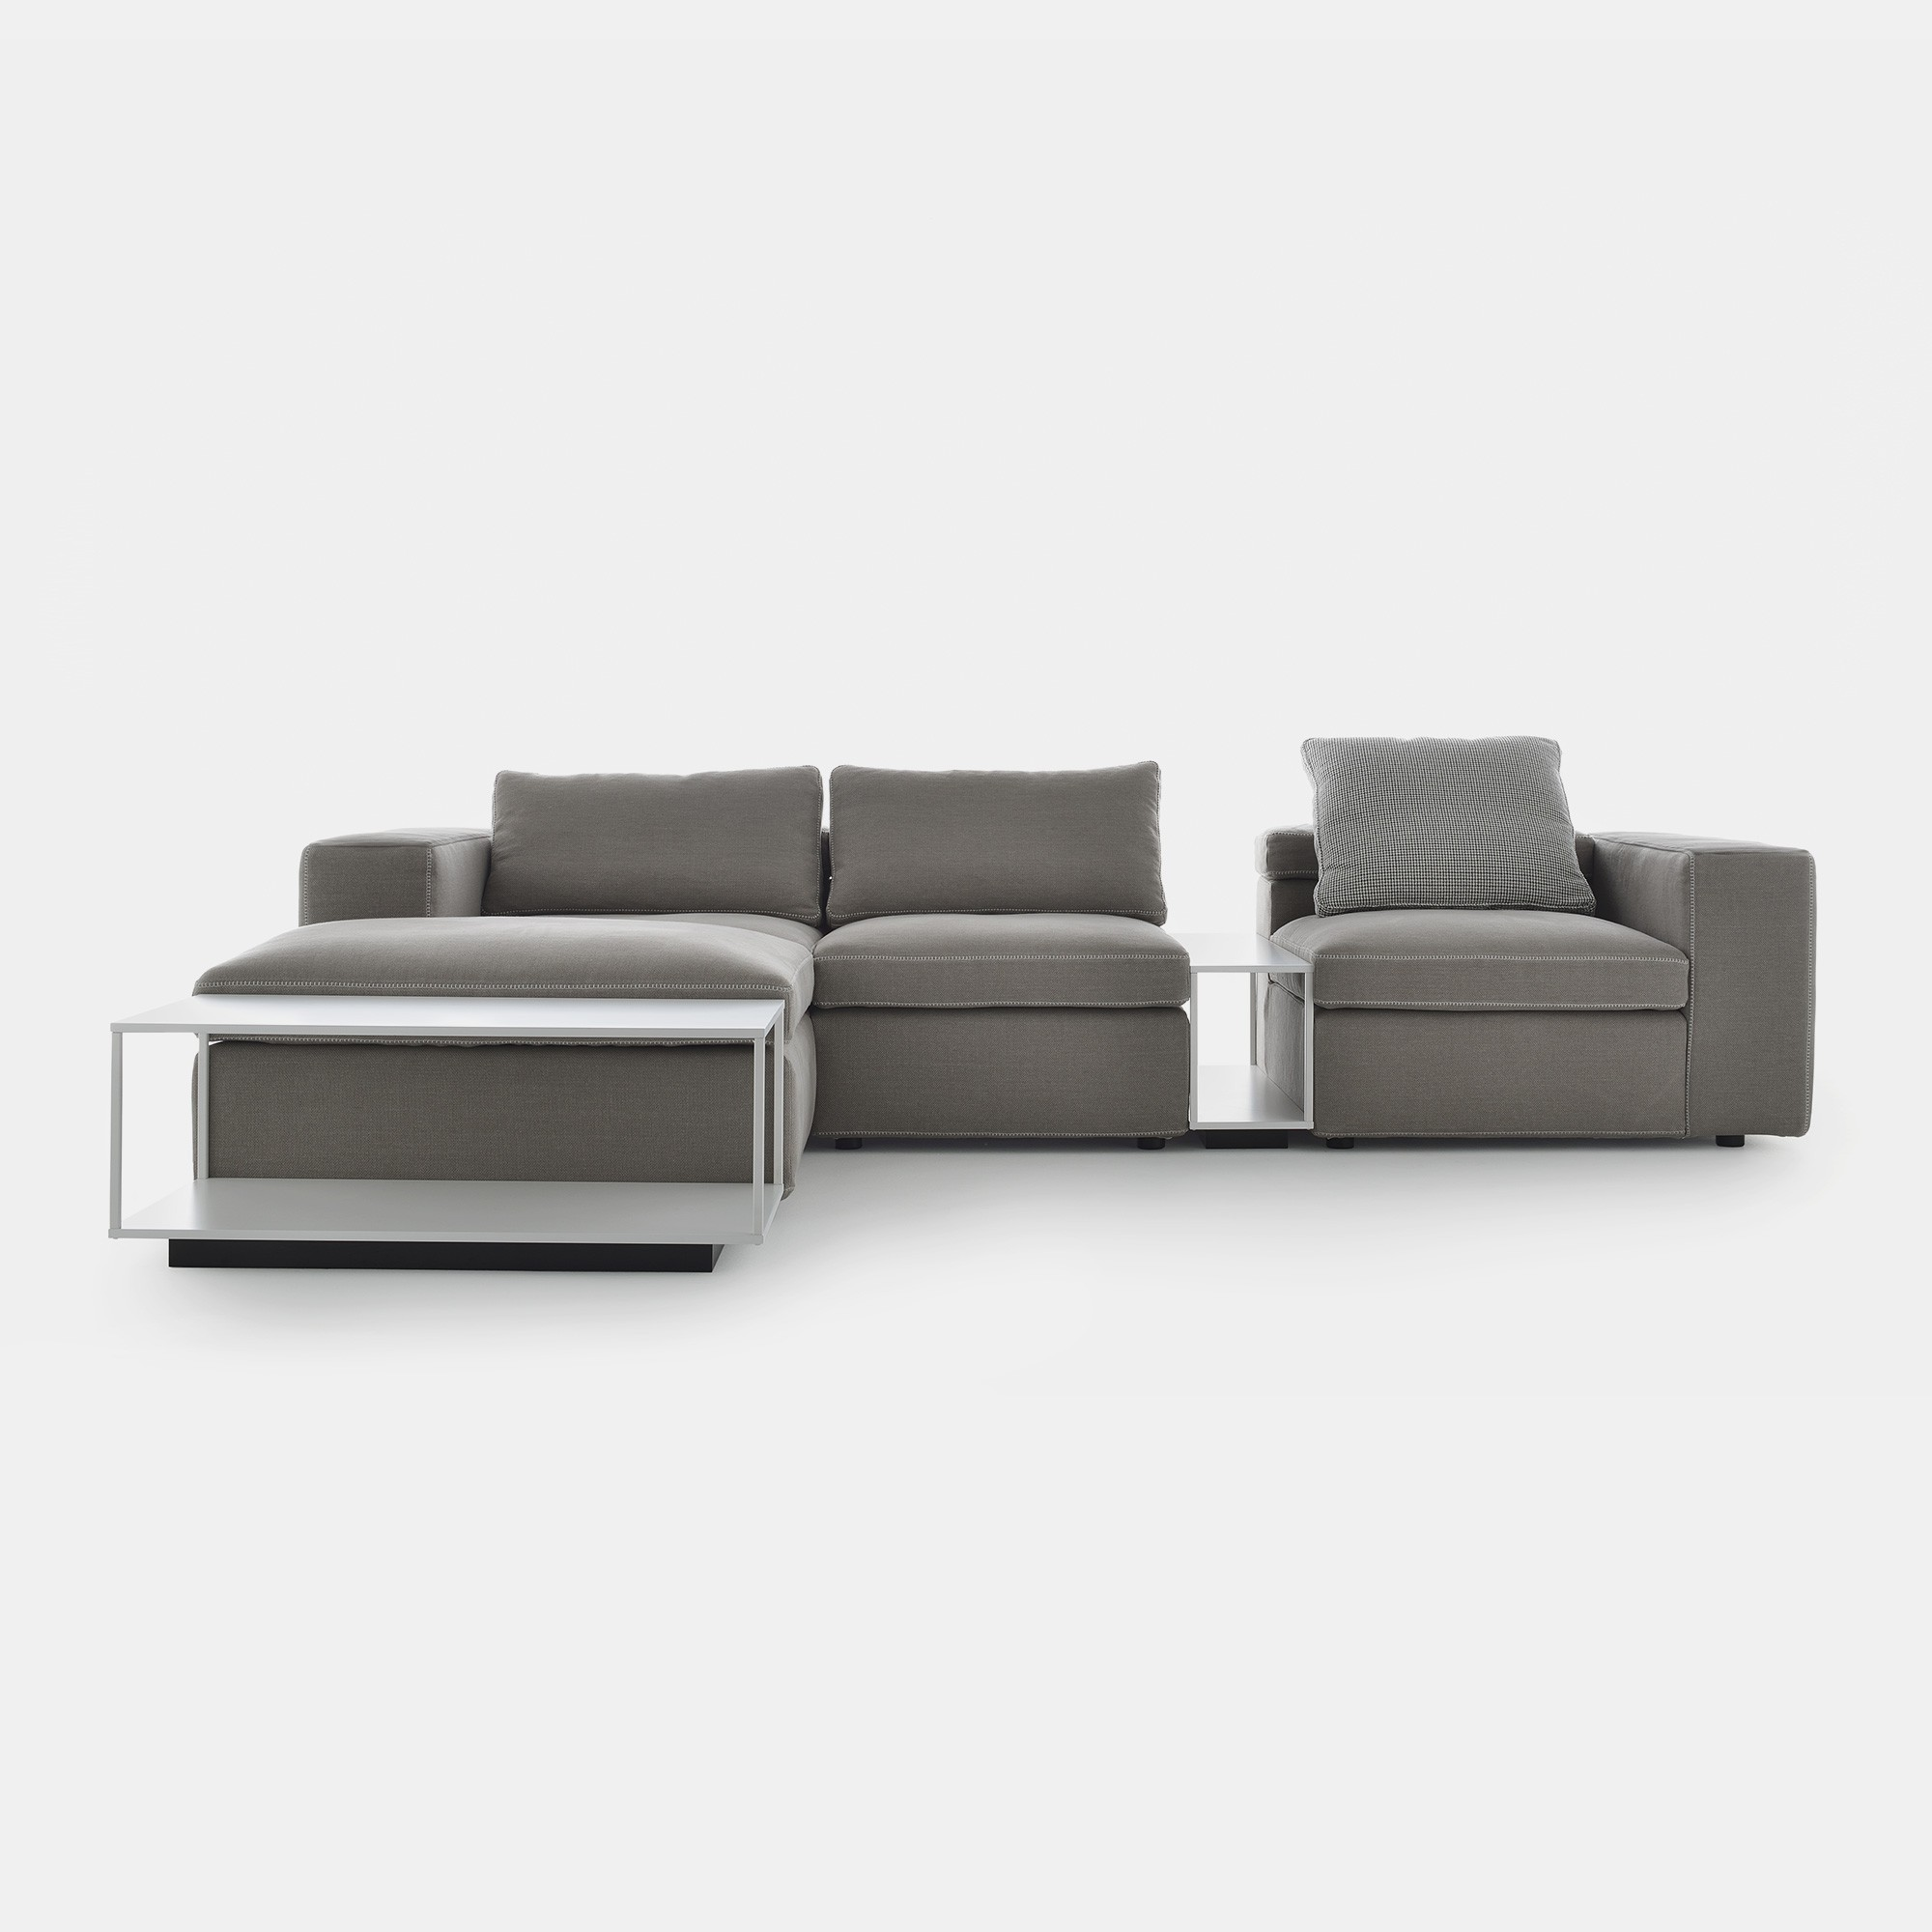 Grafo modular sofa Information and pictures MDF Italia